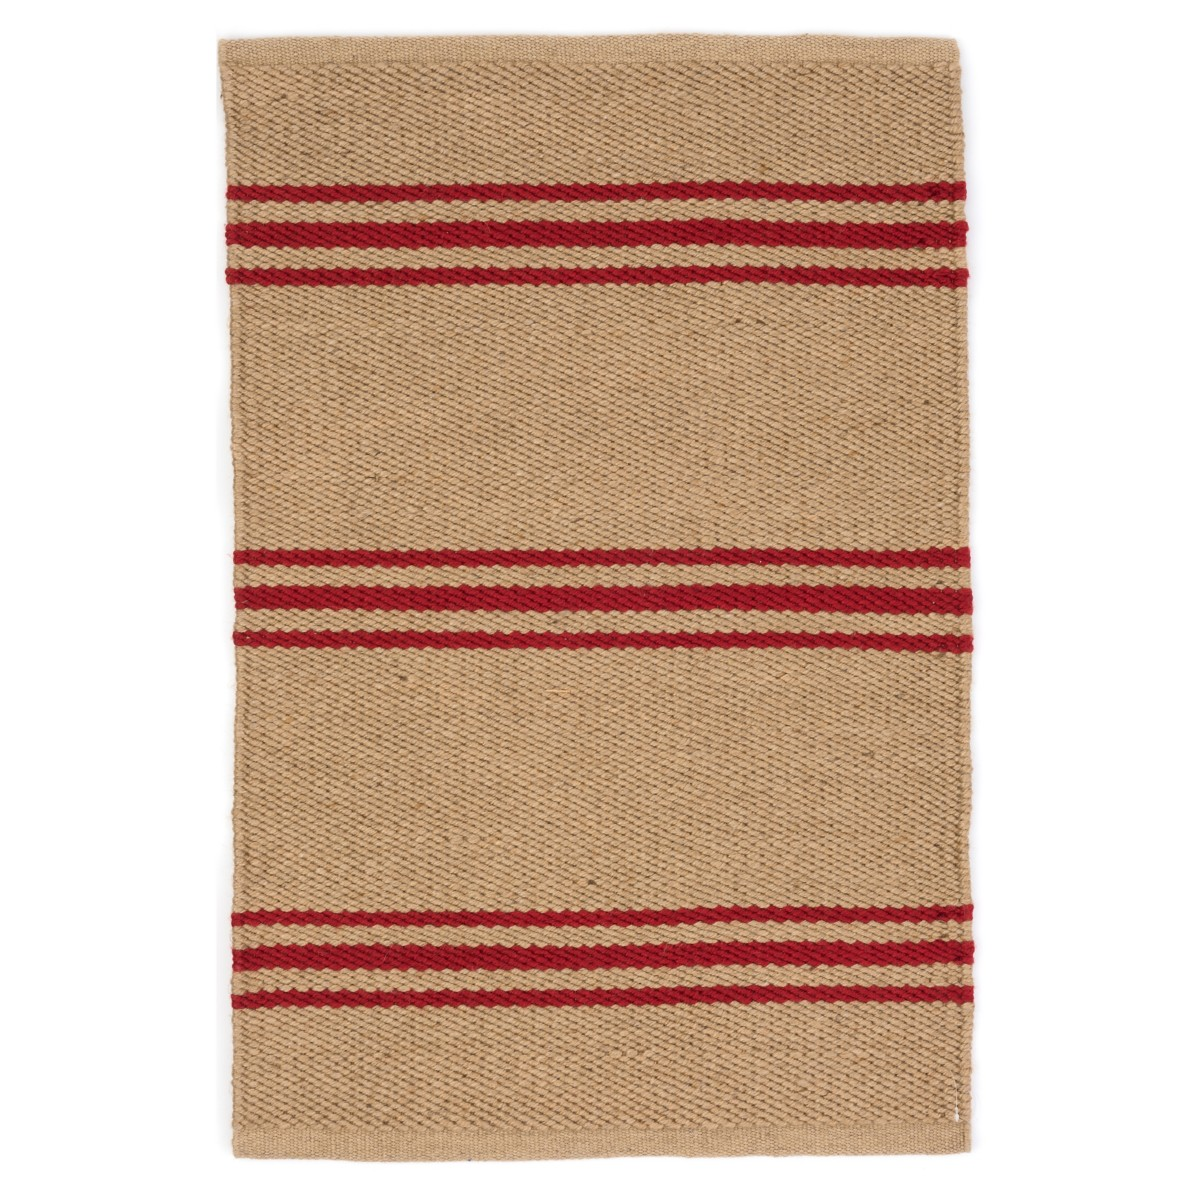 Lexington Indoor/Outdoor Rug - Camel and Red